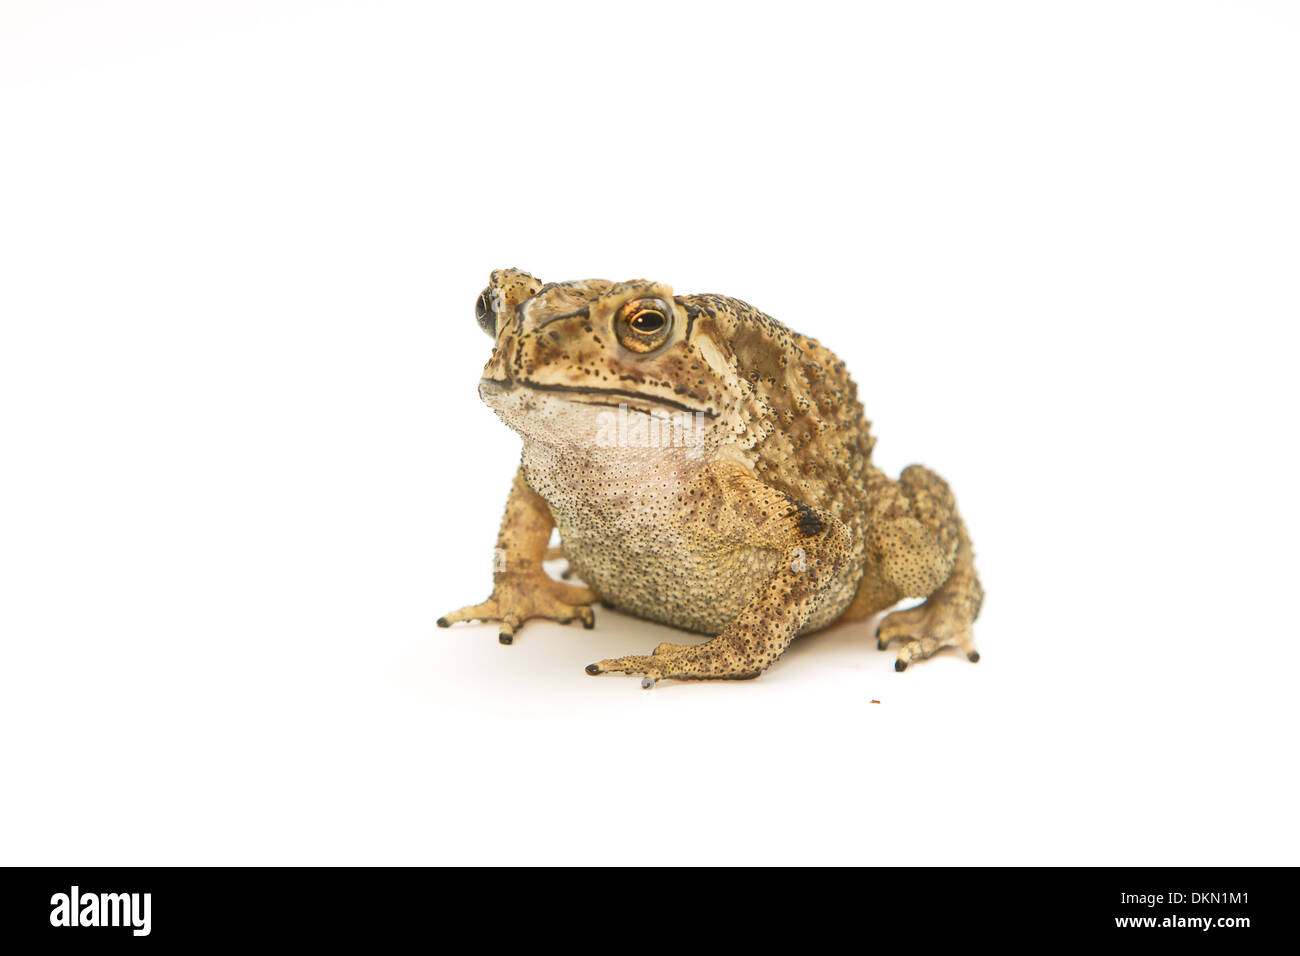 Toad Isolated - Stock Image